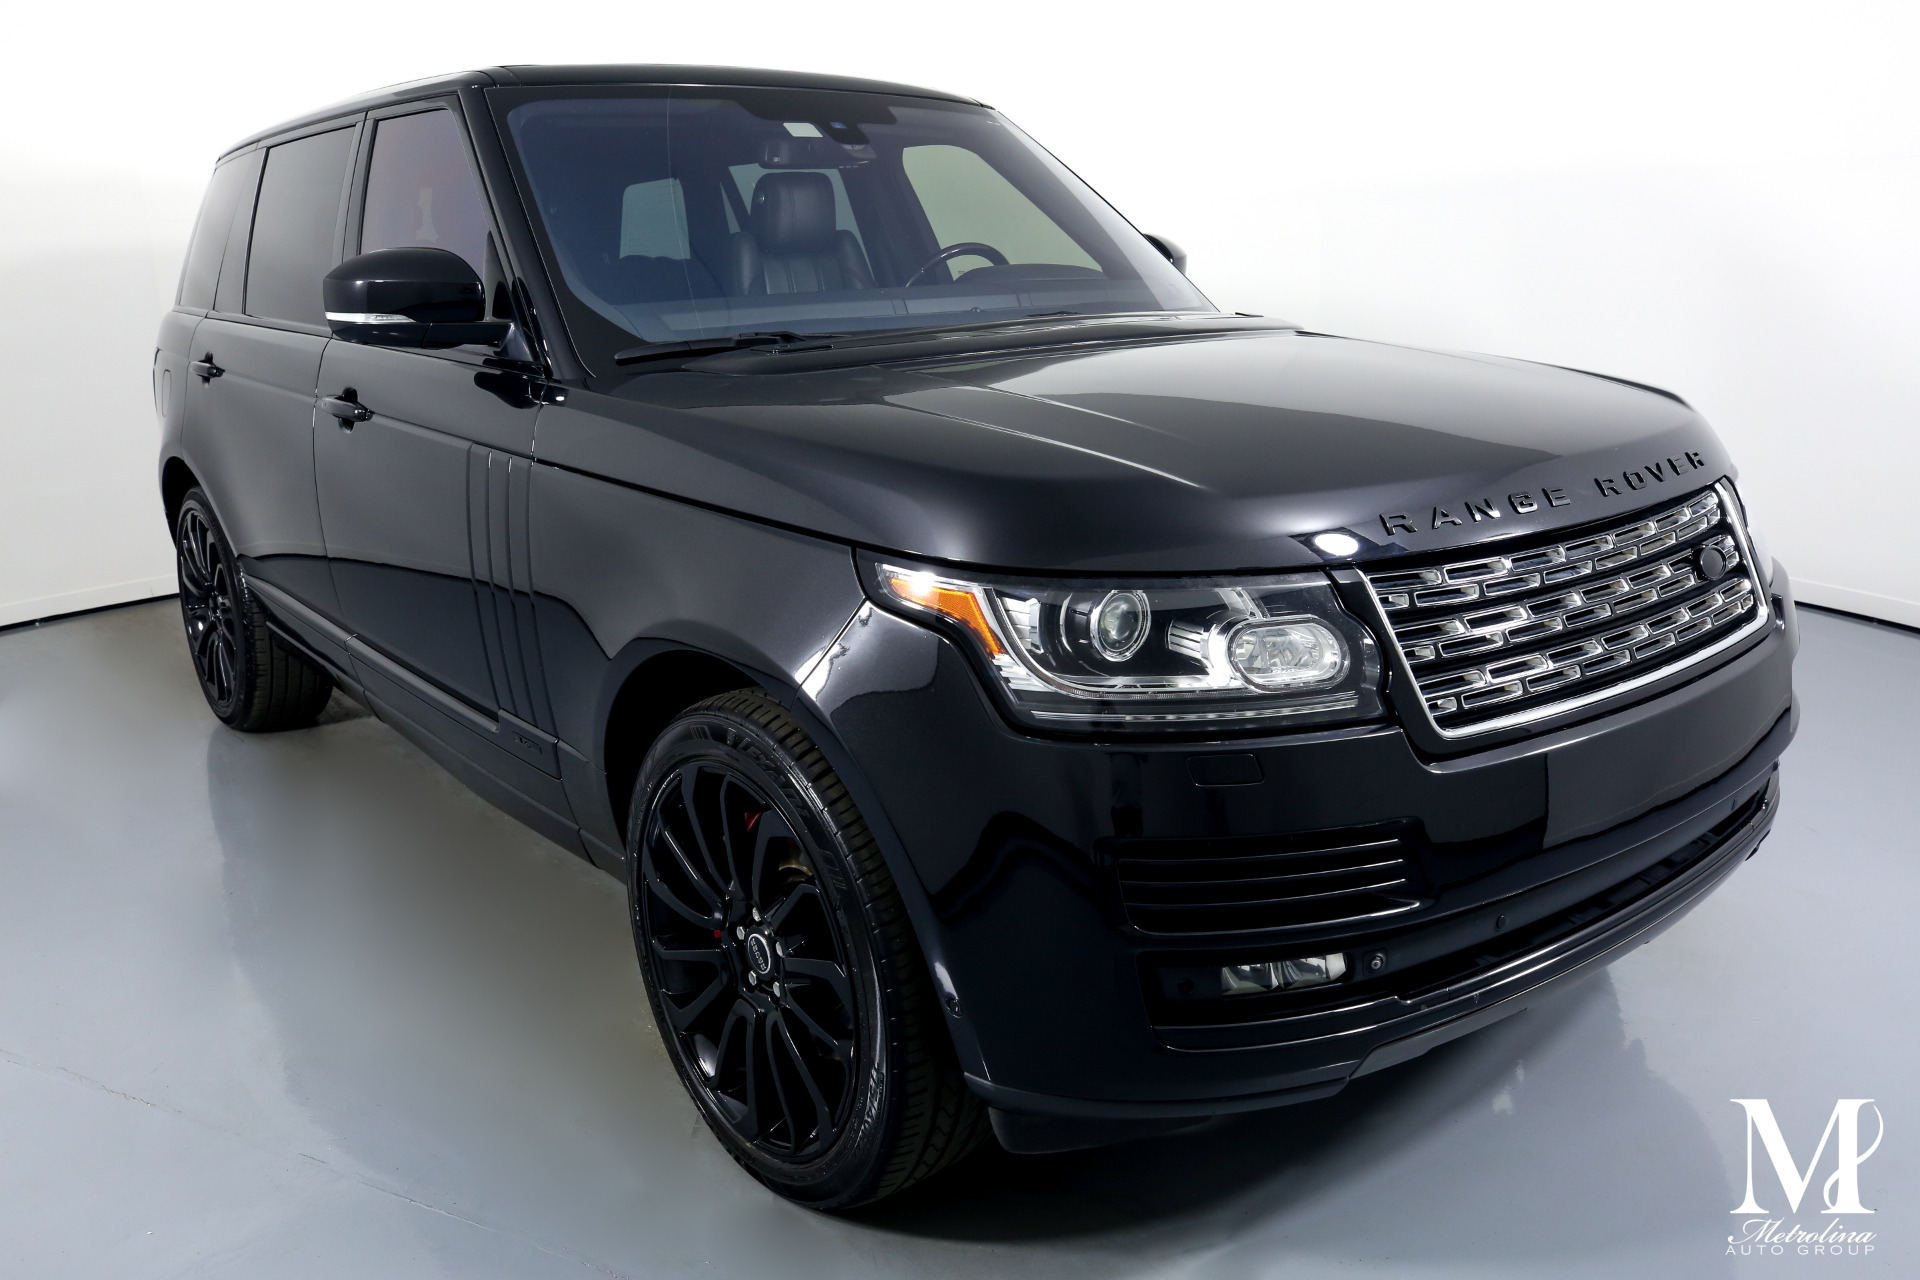 Used 2015 Land Rover Range Rover Supercharged LWB for sale $59,996 at Metrolina Auto Group in Charlotte NC 28217 - 2